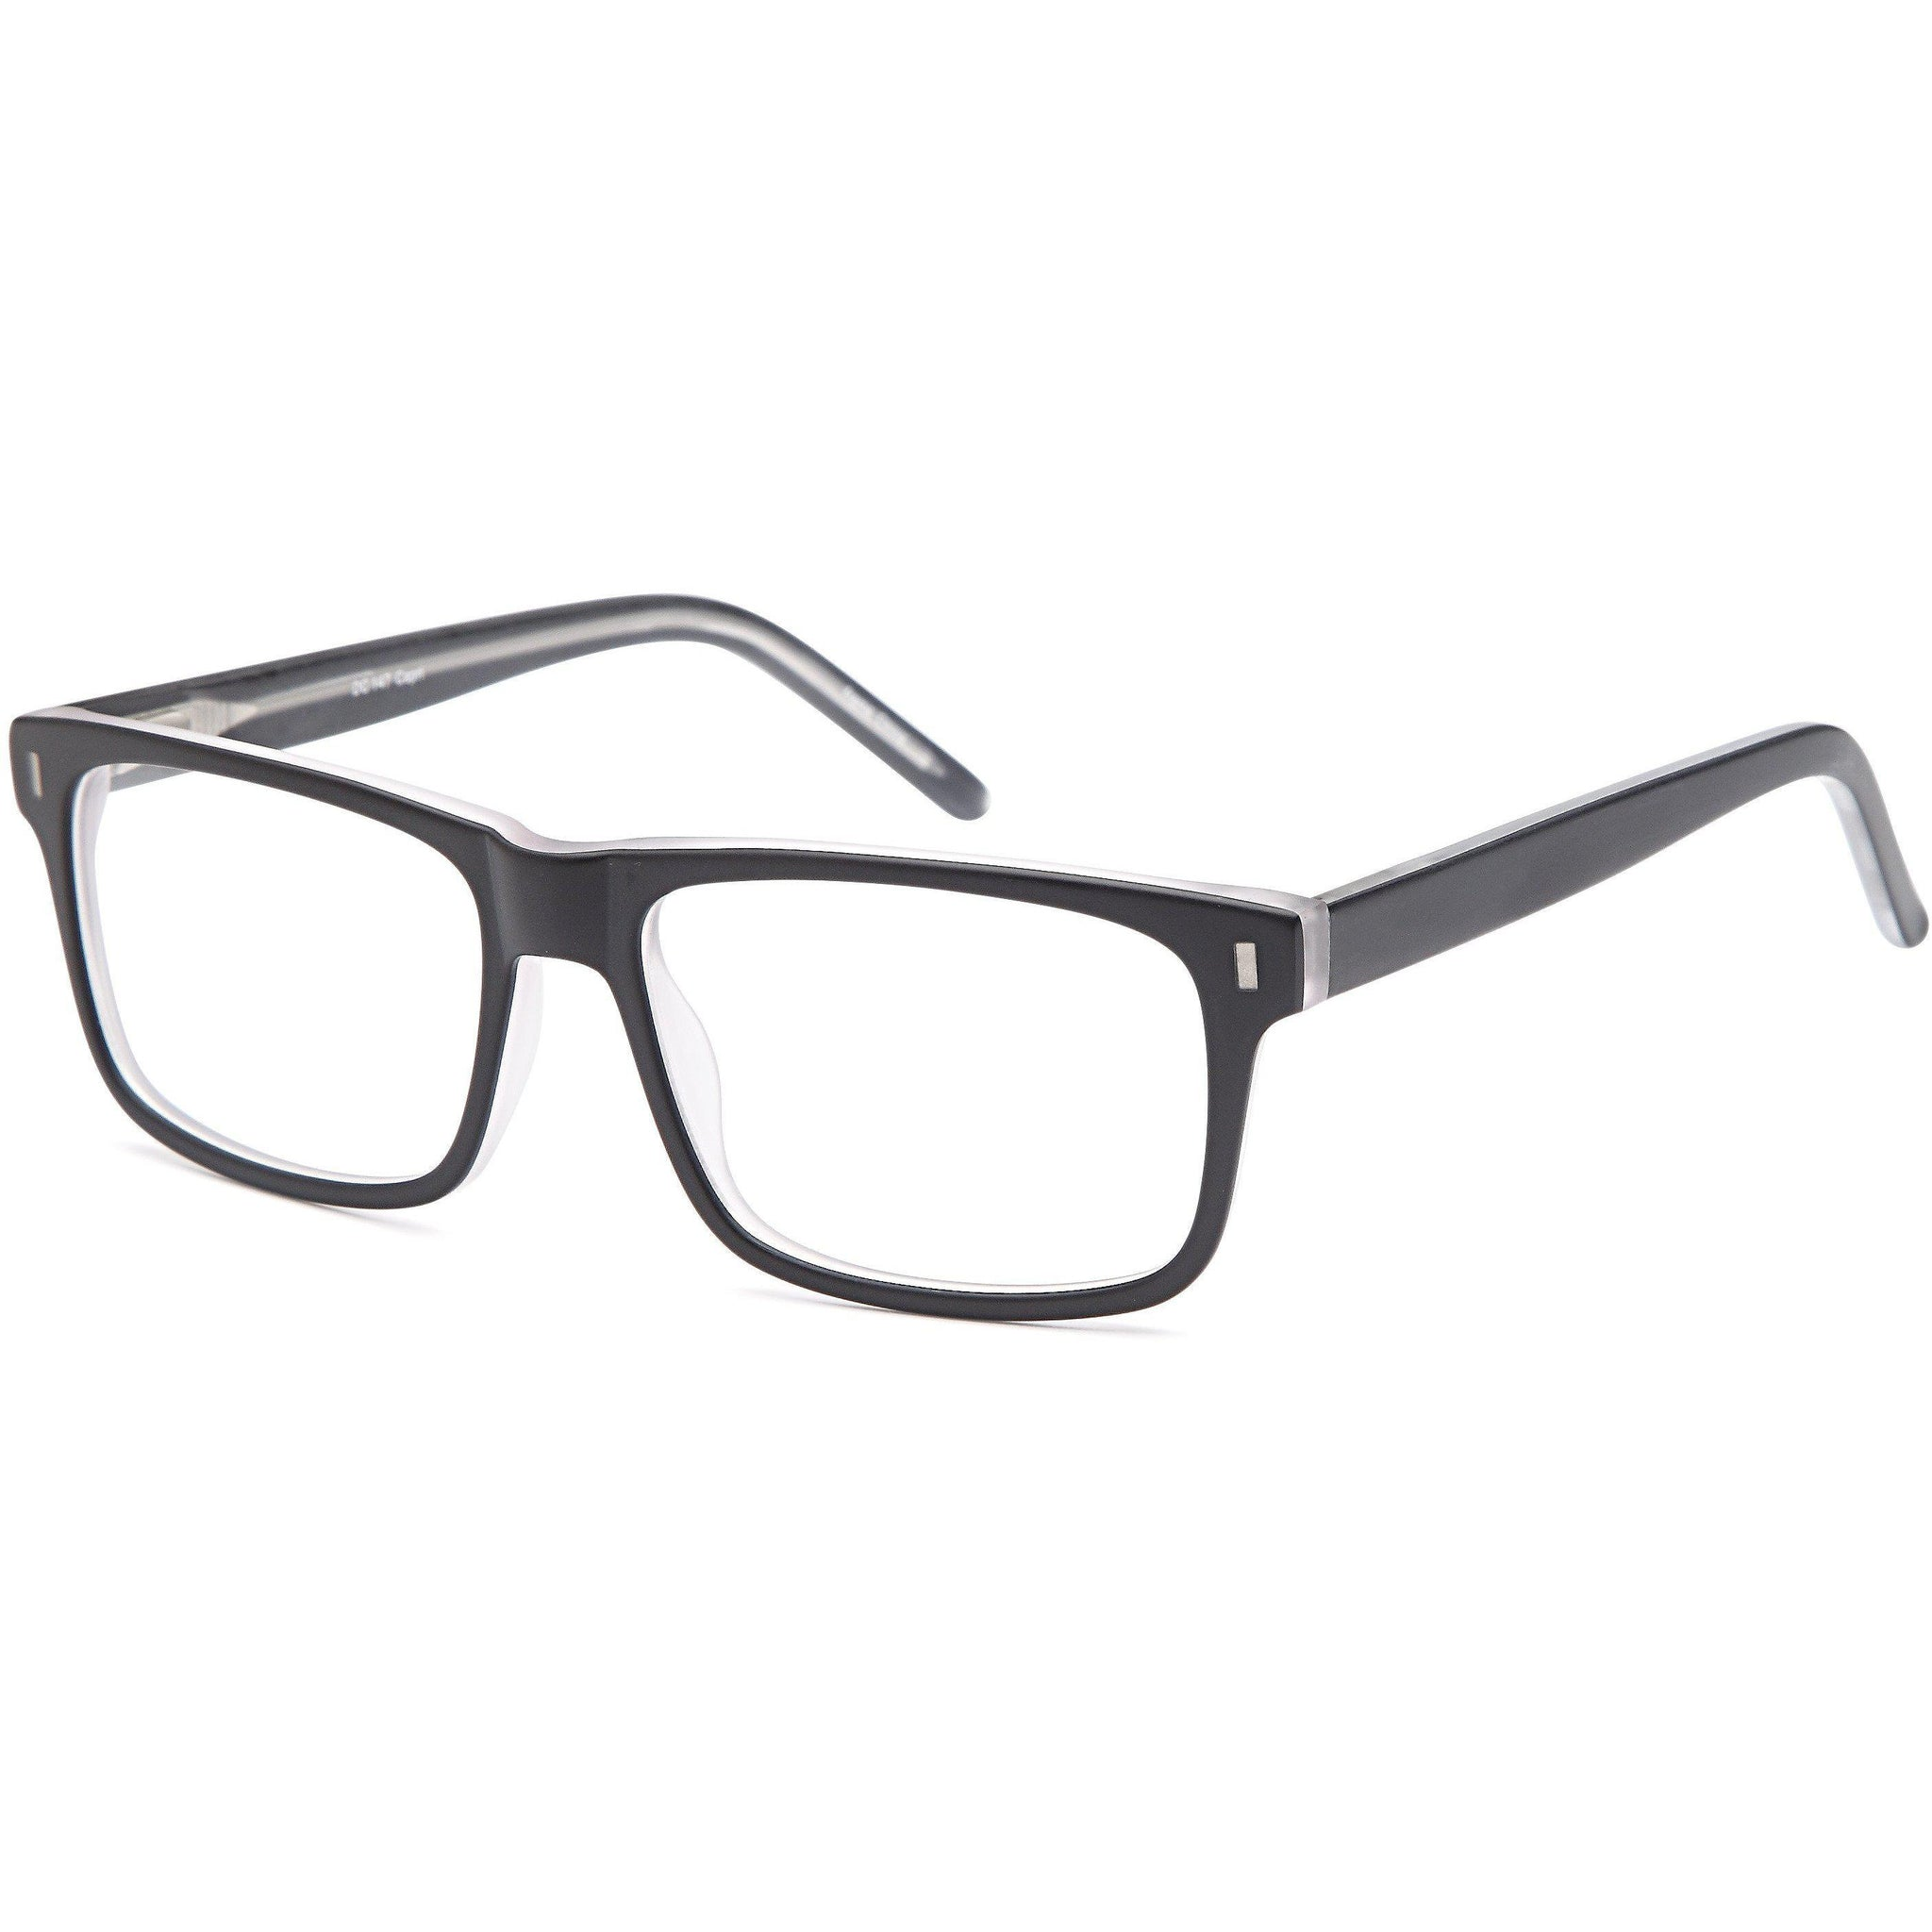 Di Caprio Prescription Glasses DC 147 Eyeglasses Frame - timetoshade